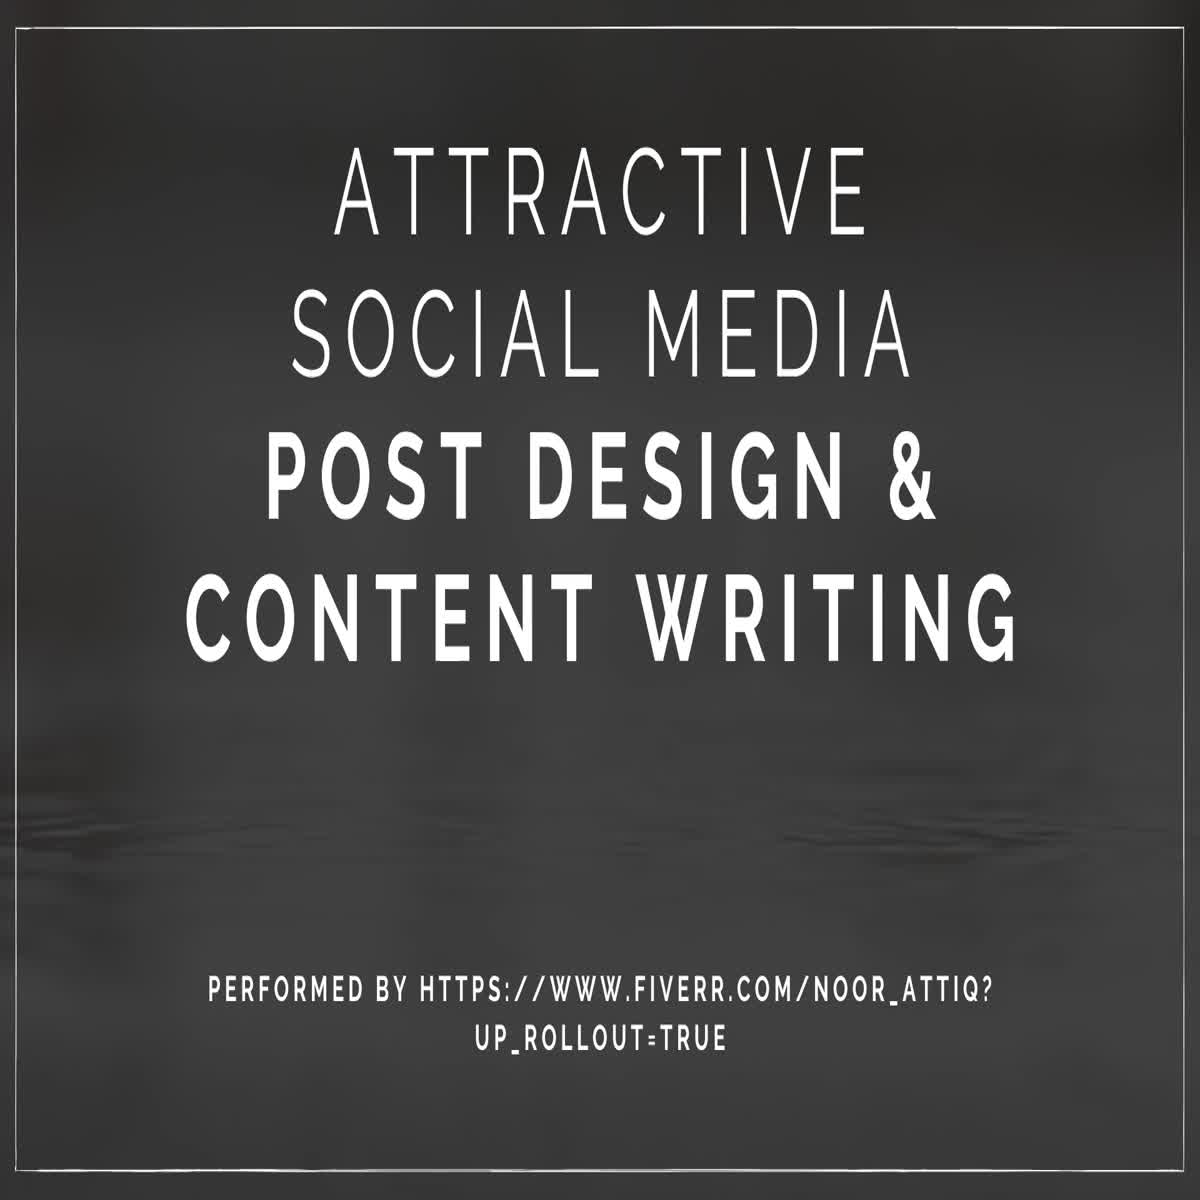 I will create an attractive posts for Social Media